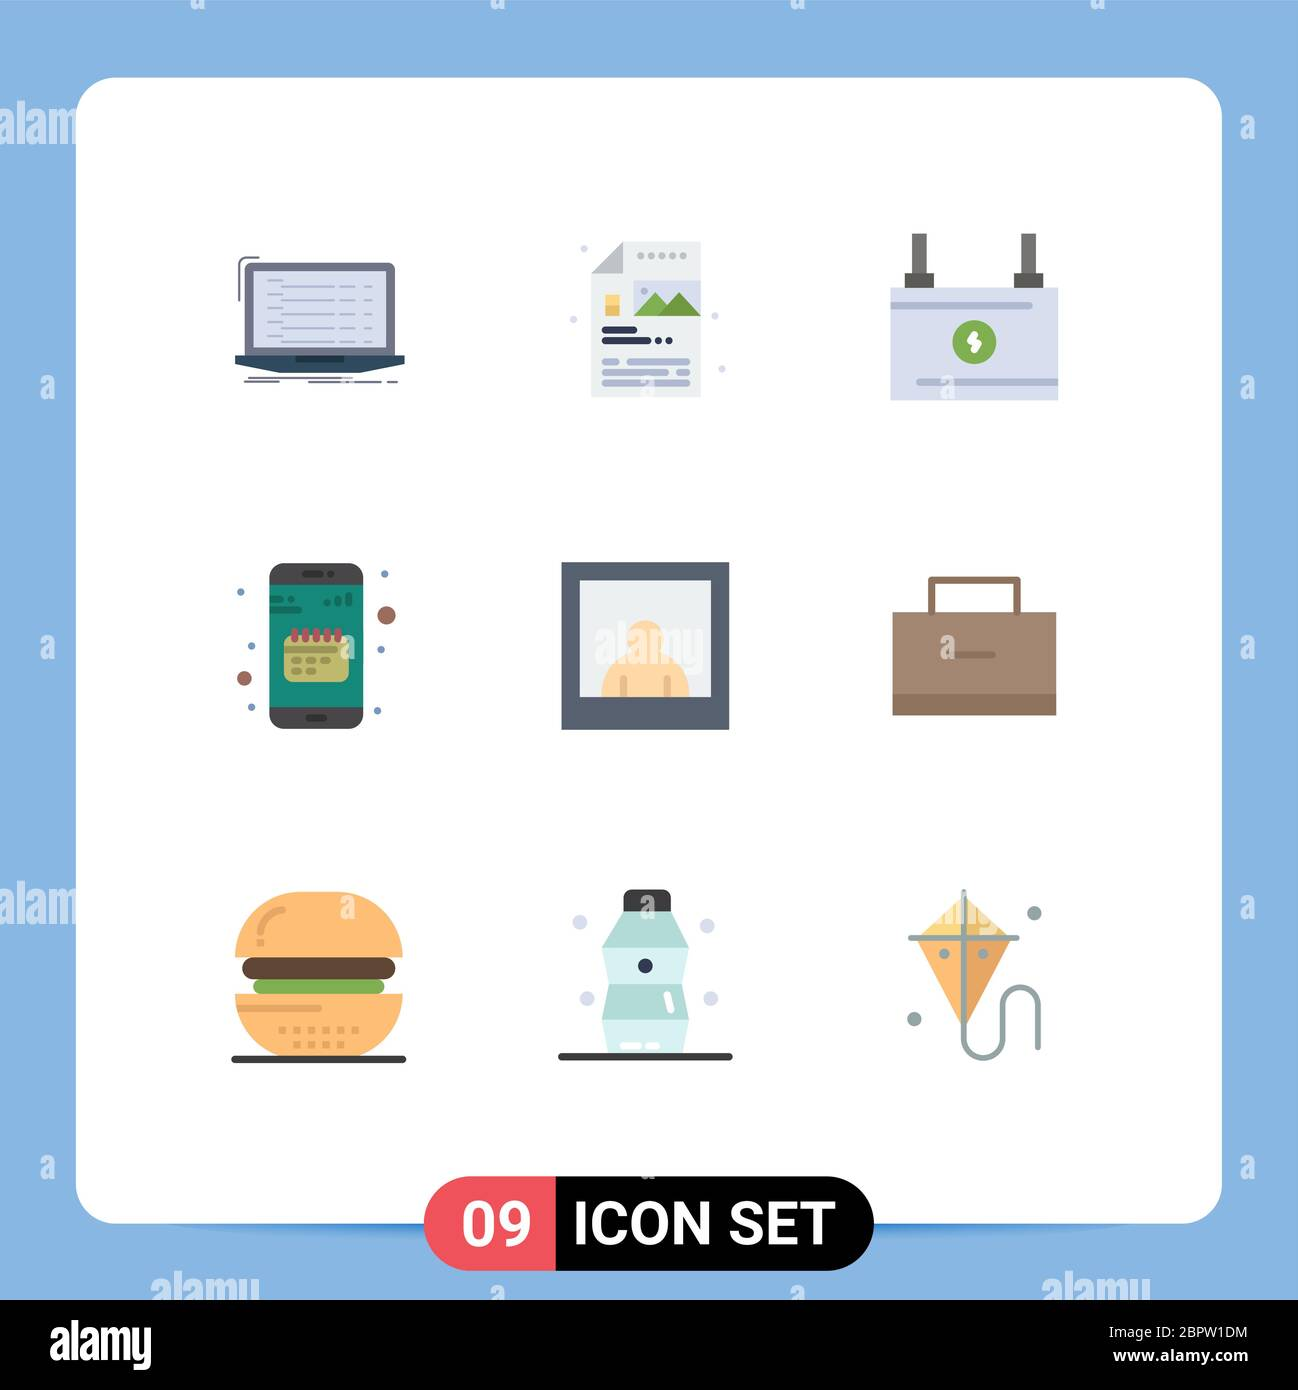 Editable Vector Line Pack of 9 Simple Flat Colors of mobile, calendar, image, app, power Editable Vector Design Elements Stock Vector